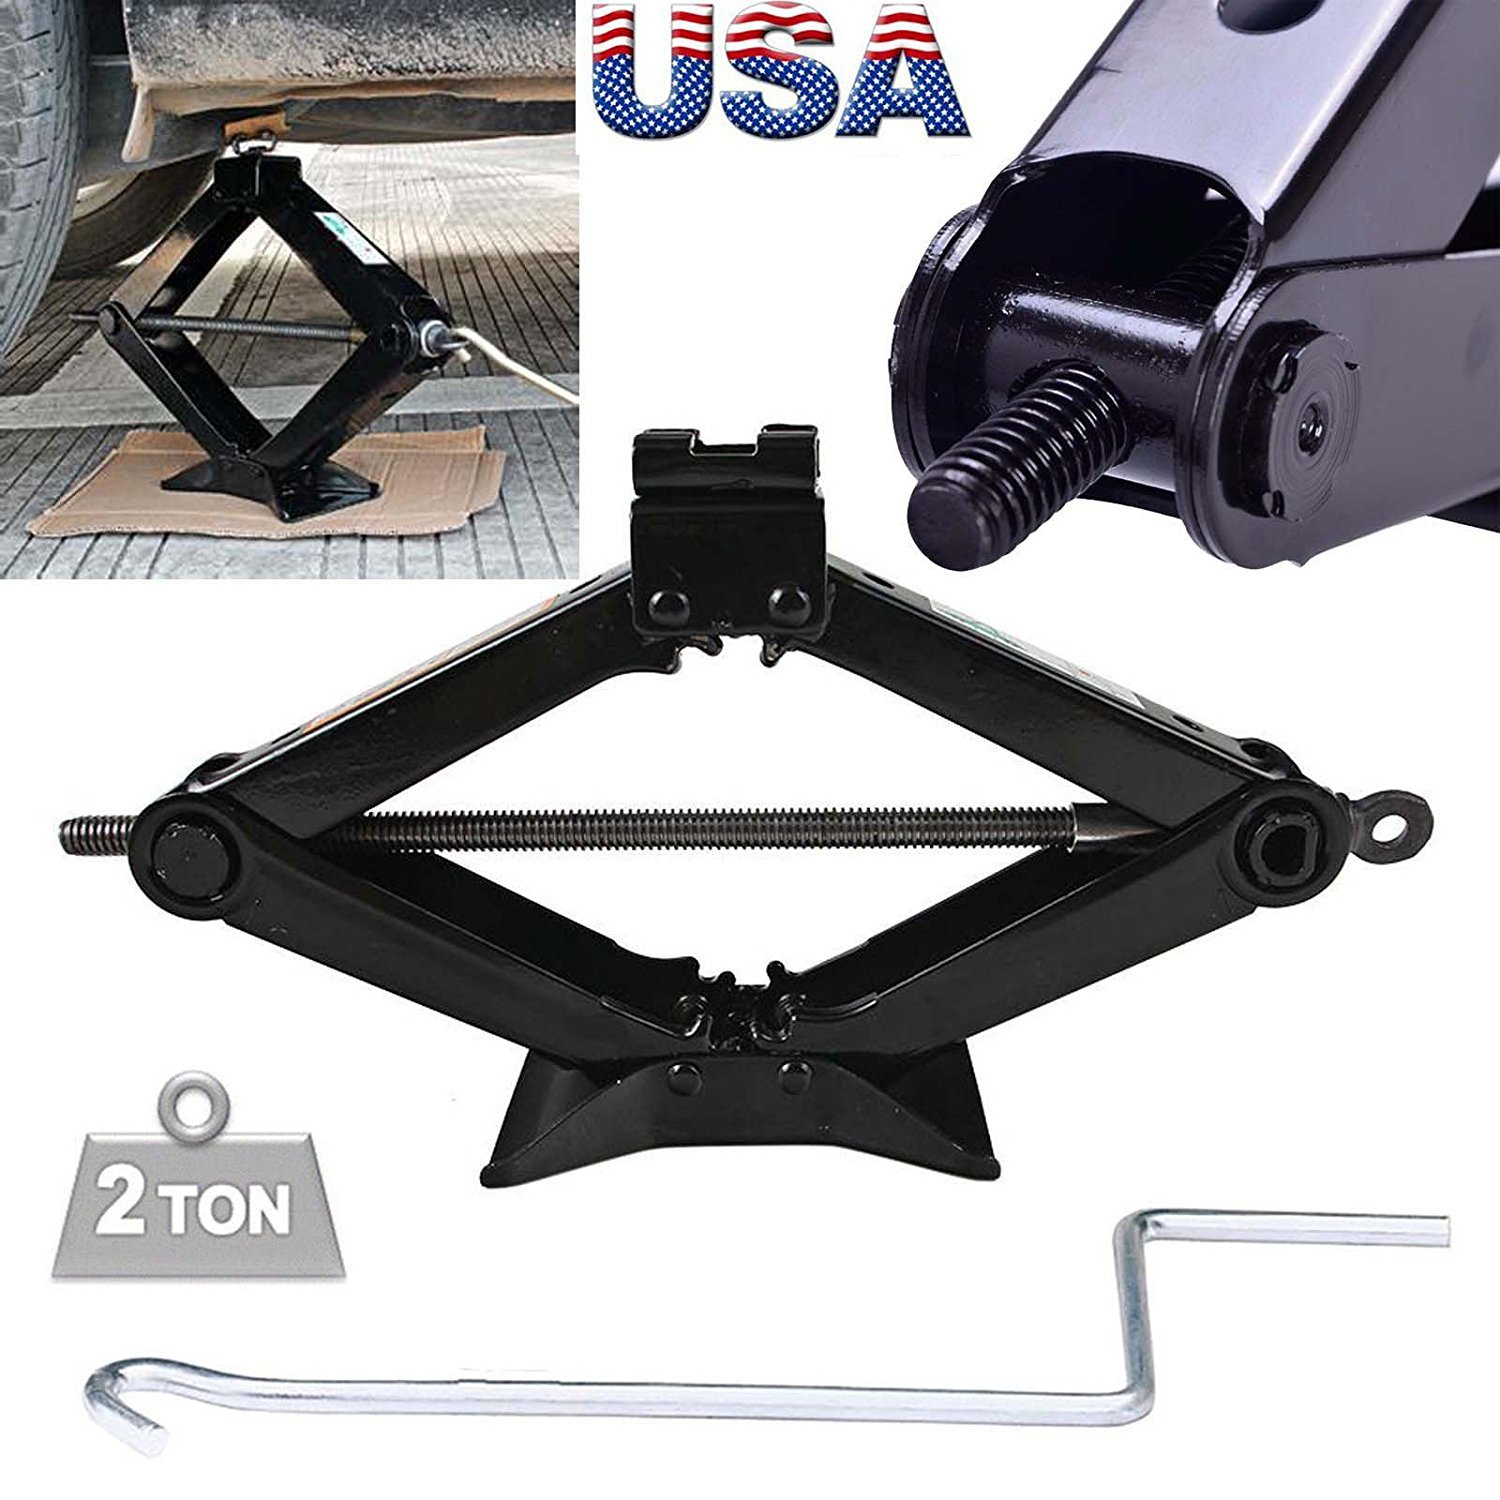 Steel Scissor Jack Black Rustproof 2 Ton Capacity/385mm Max.Height with Chromed Speed Crank Handle Tire Changing Tools for Car Van Truck Vehicles, 1PCs US Ship